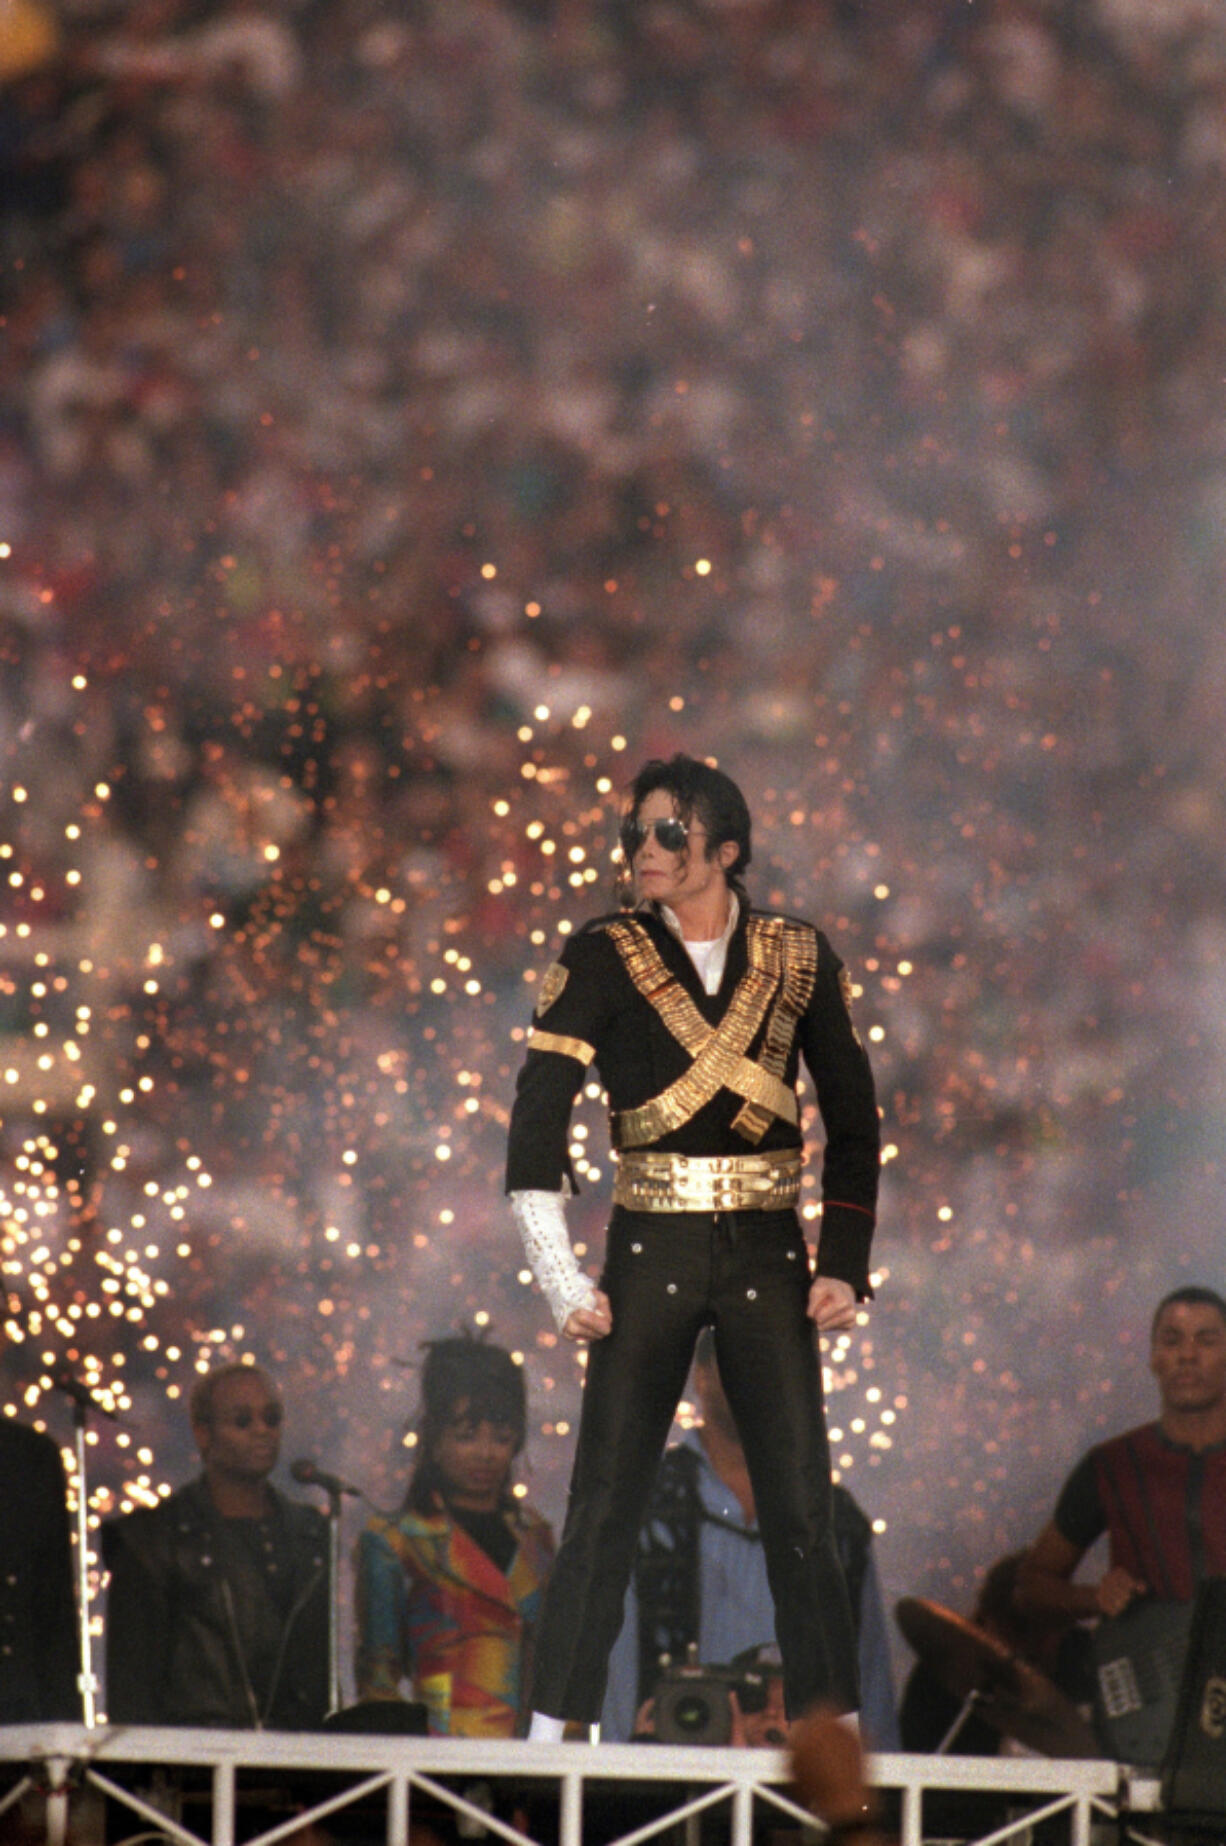 Michael Jackson performs during the Halftime show as the Dallas Cowboys take on the Buffalo Bills in Super Bowl XXVII at the Rose Bowl on Jan. 31, 1993, in Pasadena, Calif.